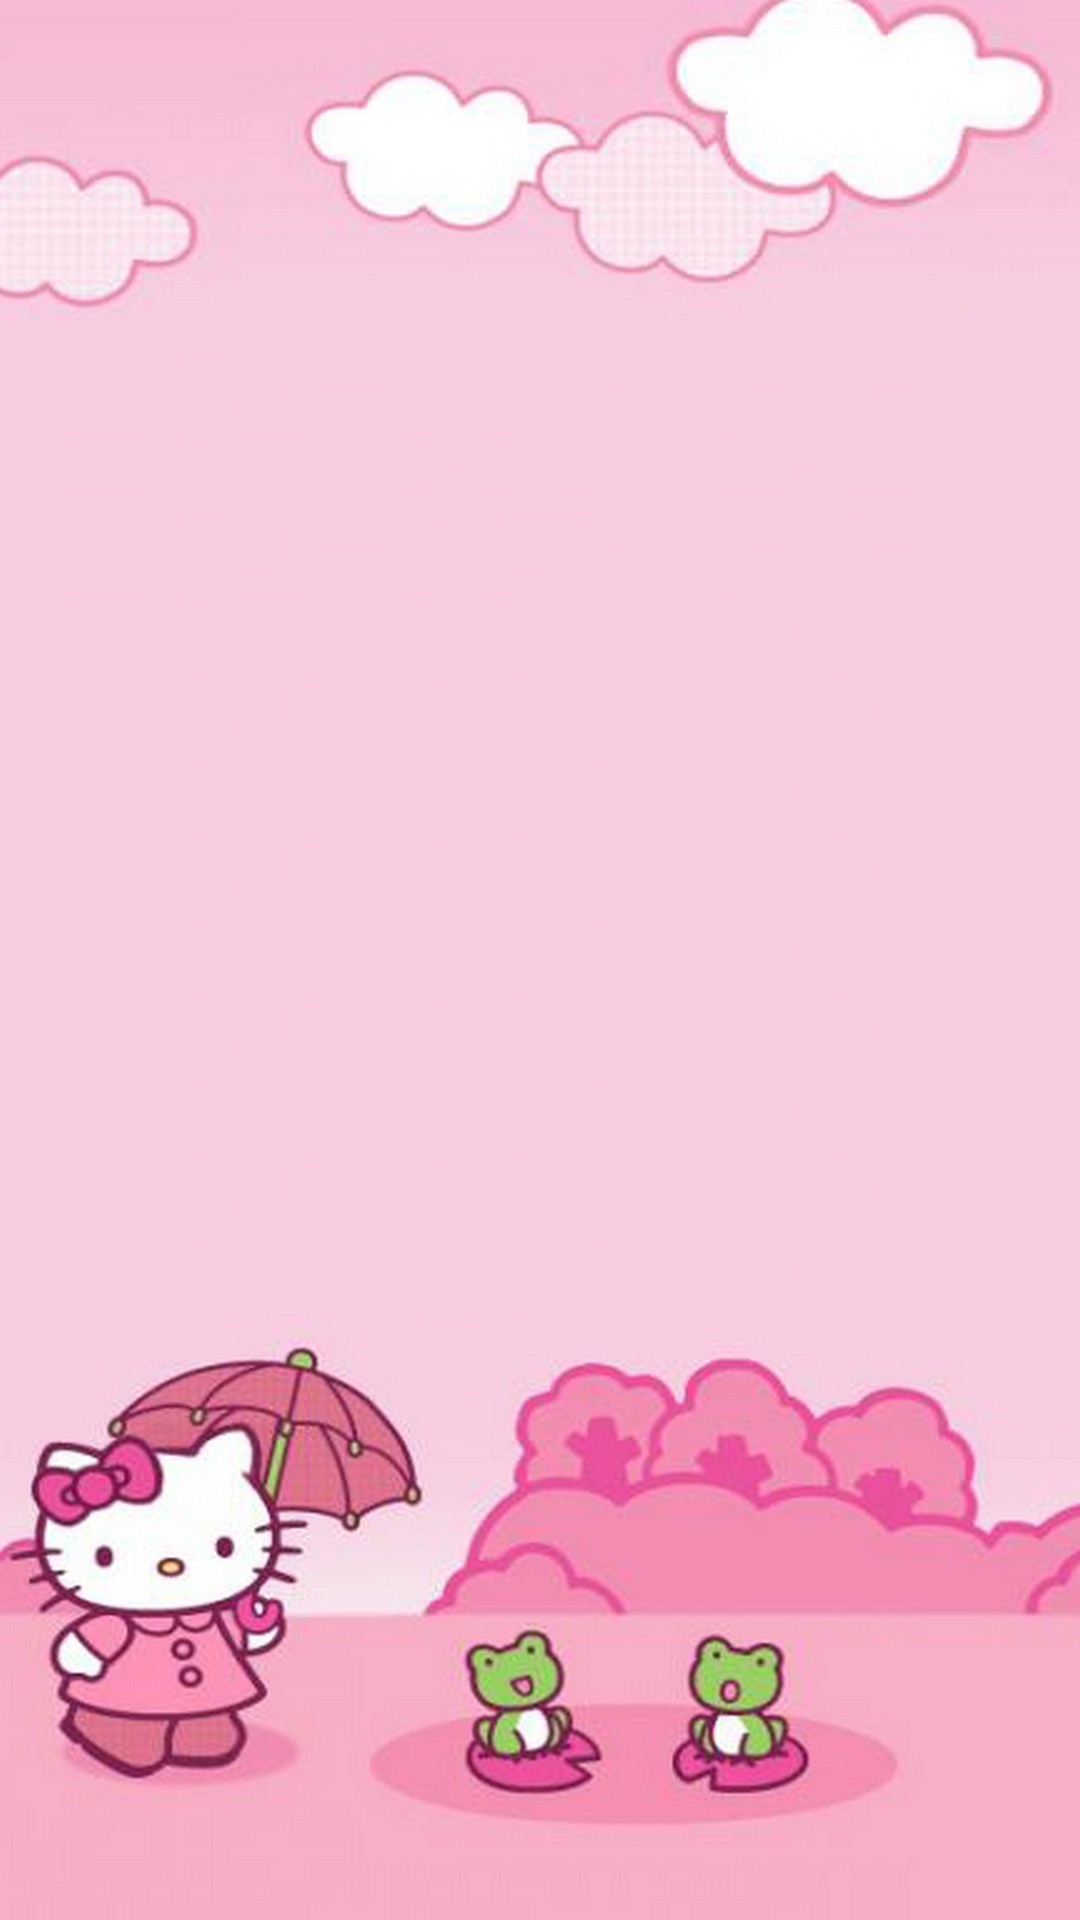 My Melody iPhone hd wallpaper